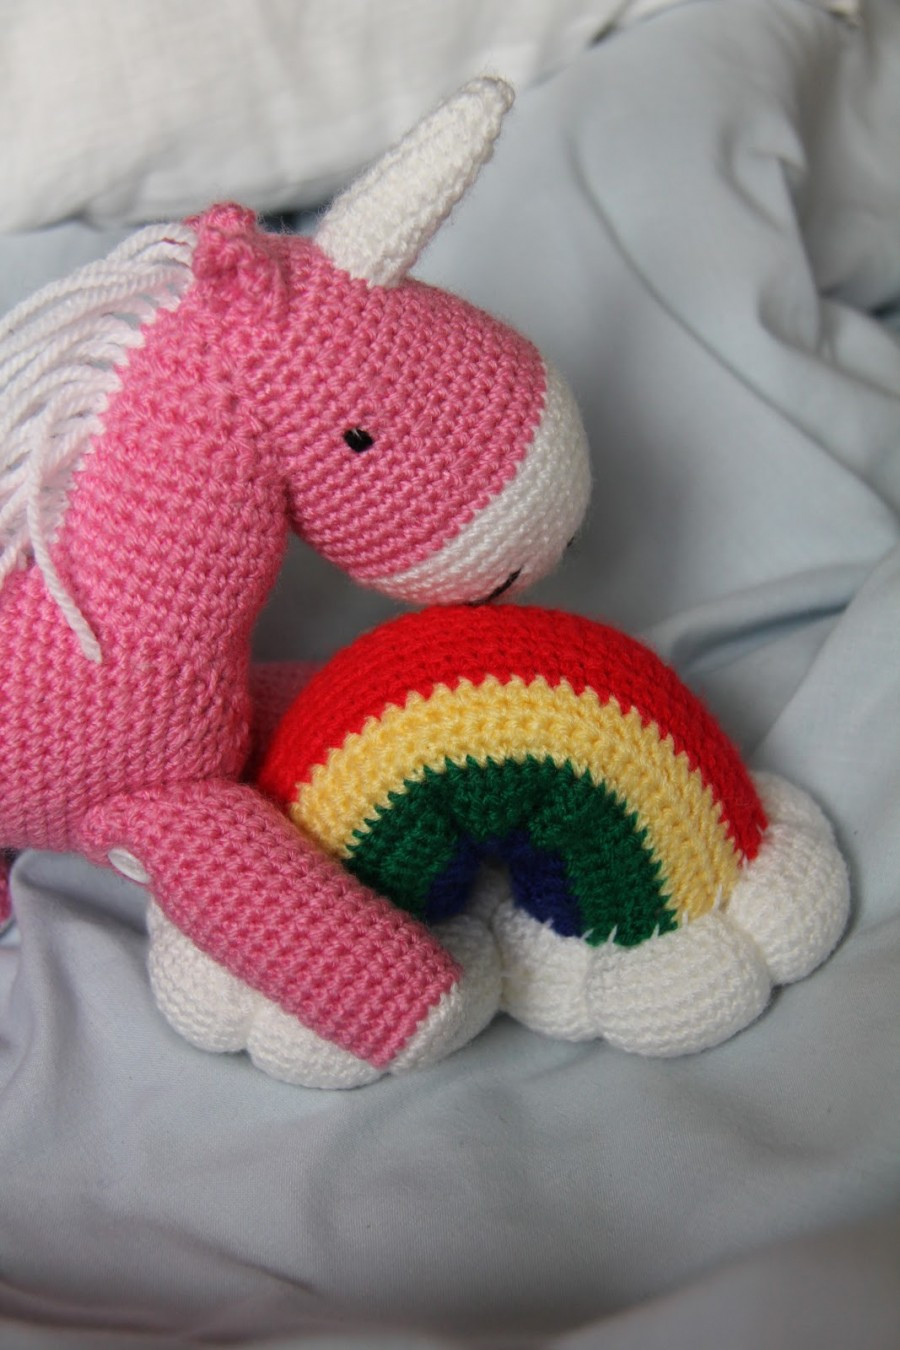 Luxury Unicorn Crochet Patterns Free Crochet Of Contemporary 42 Ideas Free Crochet